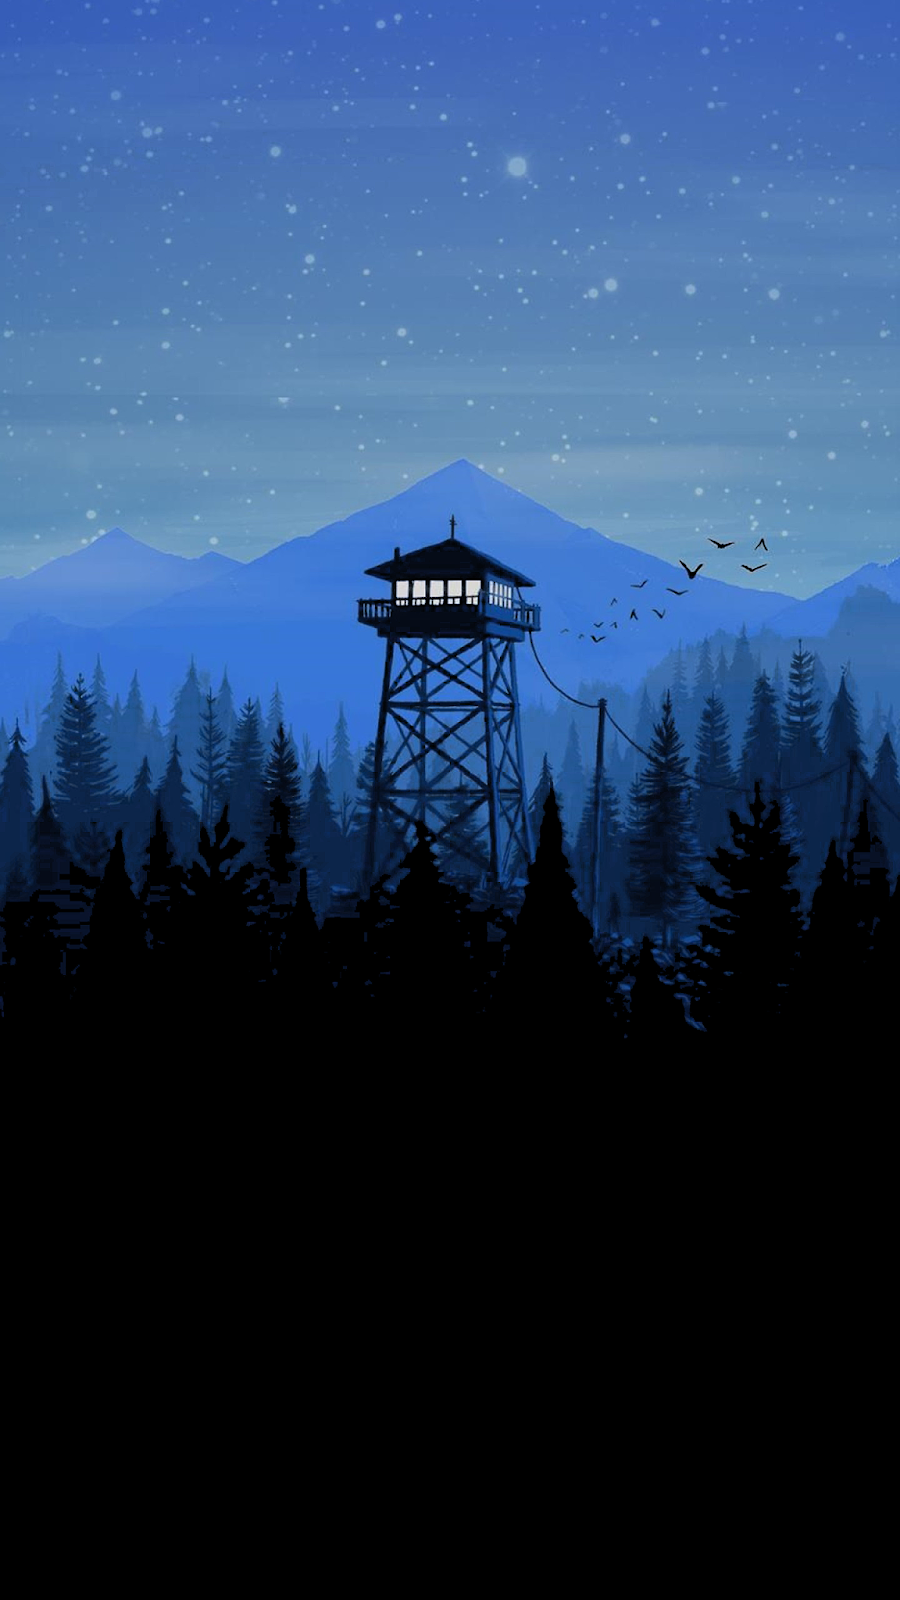 Another Firewatch Wallpaper (for Amoled display)